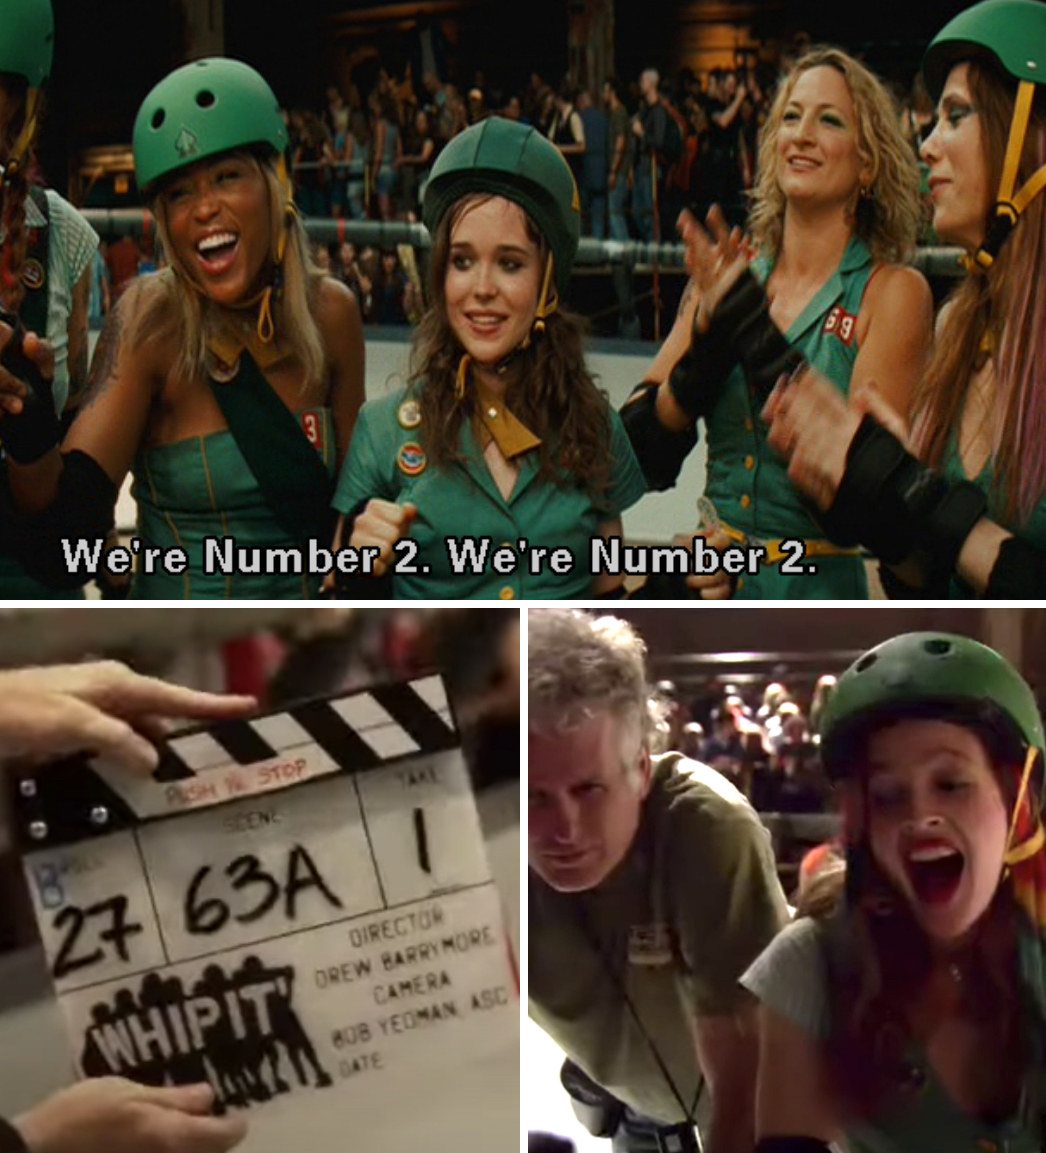 """Bliss, Maggie, and the rest of the group chanting: """"We're Number 2. We're number 2;"""" Drew Barrymore behind the scenes directing """"Whip It"""""""